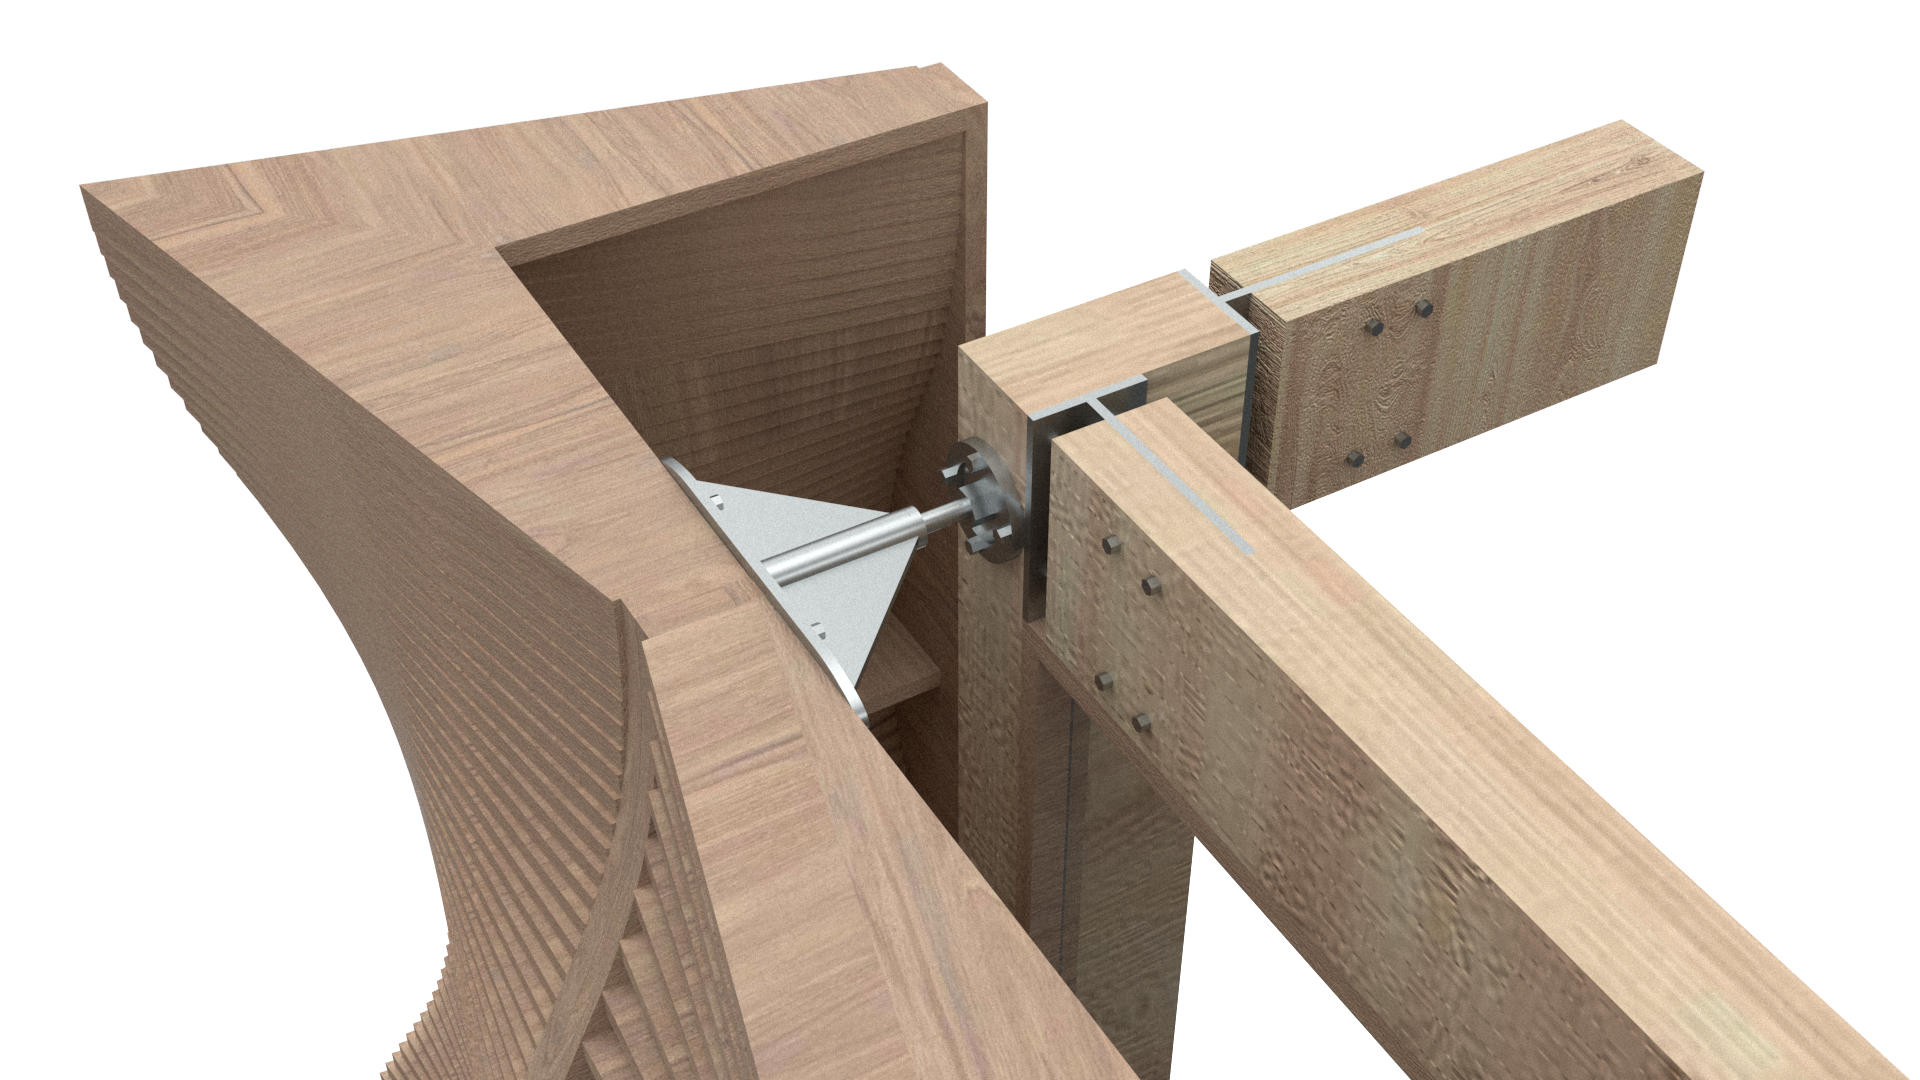 This rendering shows how the wall is connected to the glulam frame system. Custom steel brackets could be screwed into plates that attach to each side of the wall system.